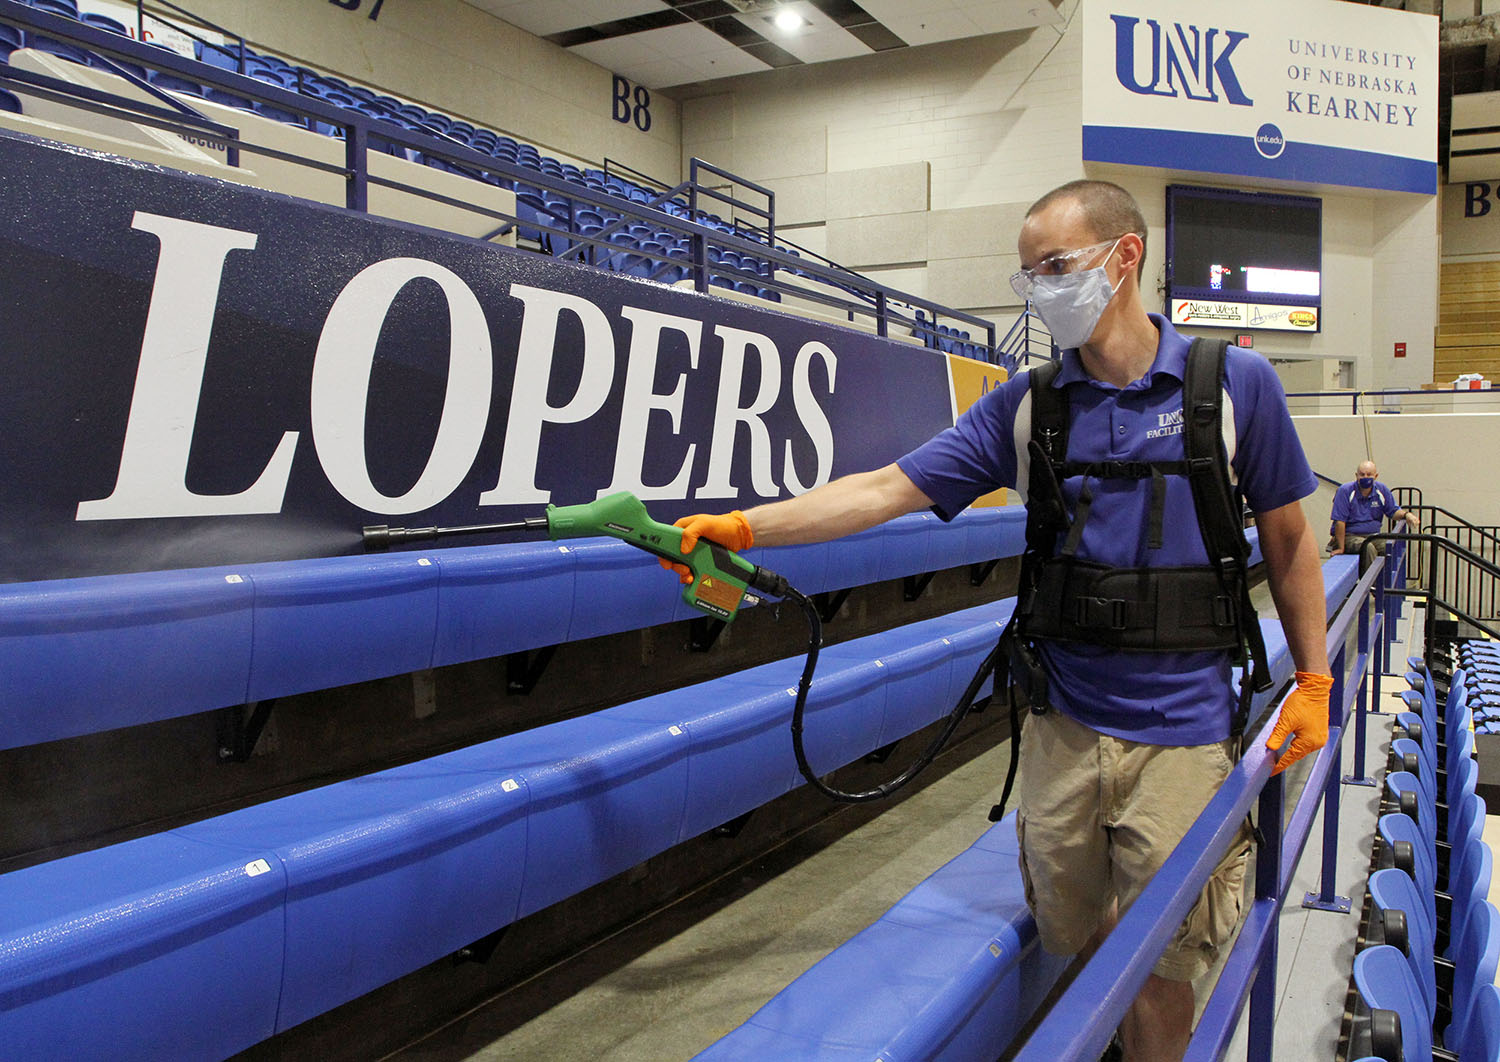 Chris Blocher, lead custodian for UNK's athletic facilities, uses an electrostatic sprayer to disinfect surfaces inside the Health and Sports Center. Electrostatic sprayers apply a positive charge to liquid disinfectants as they pass through the nozzle. The positively charged disinfectant is attracted to negatively charged surfaces, allowing the disinfectant to efficiently coat hard, nonporous surfaces.